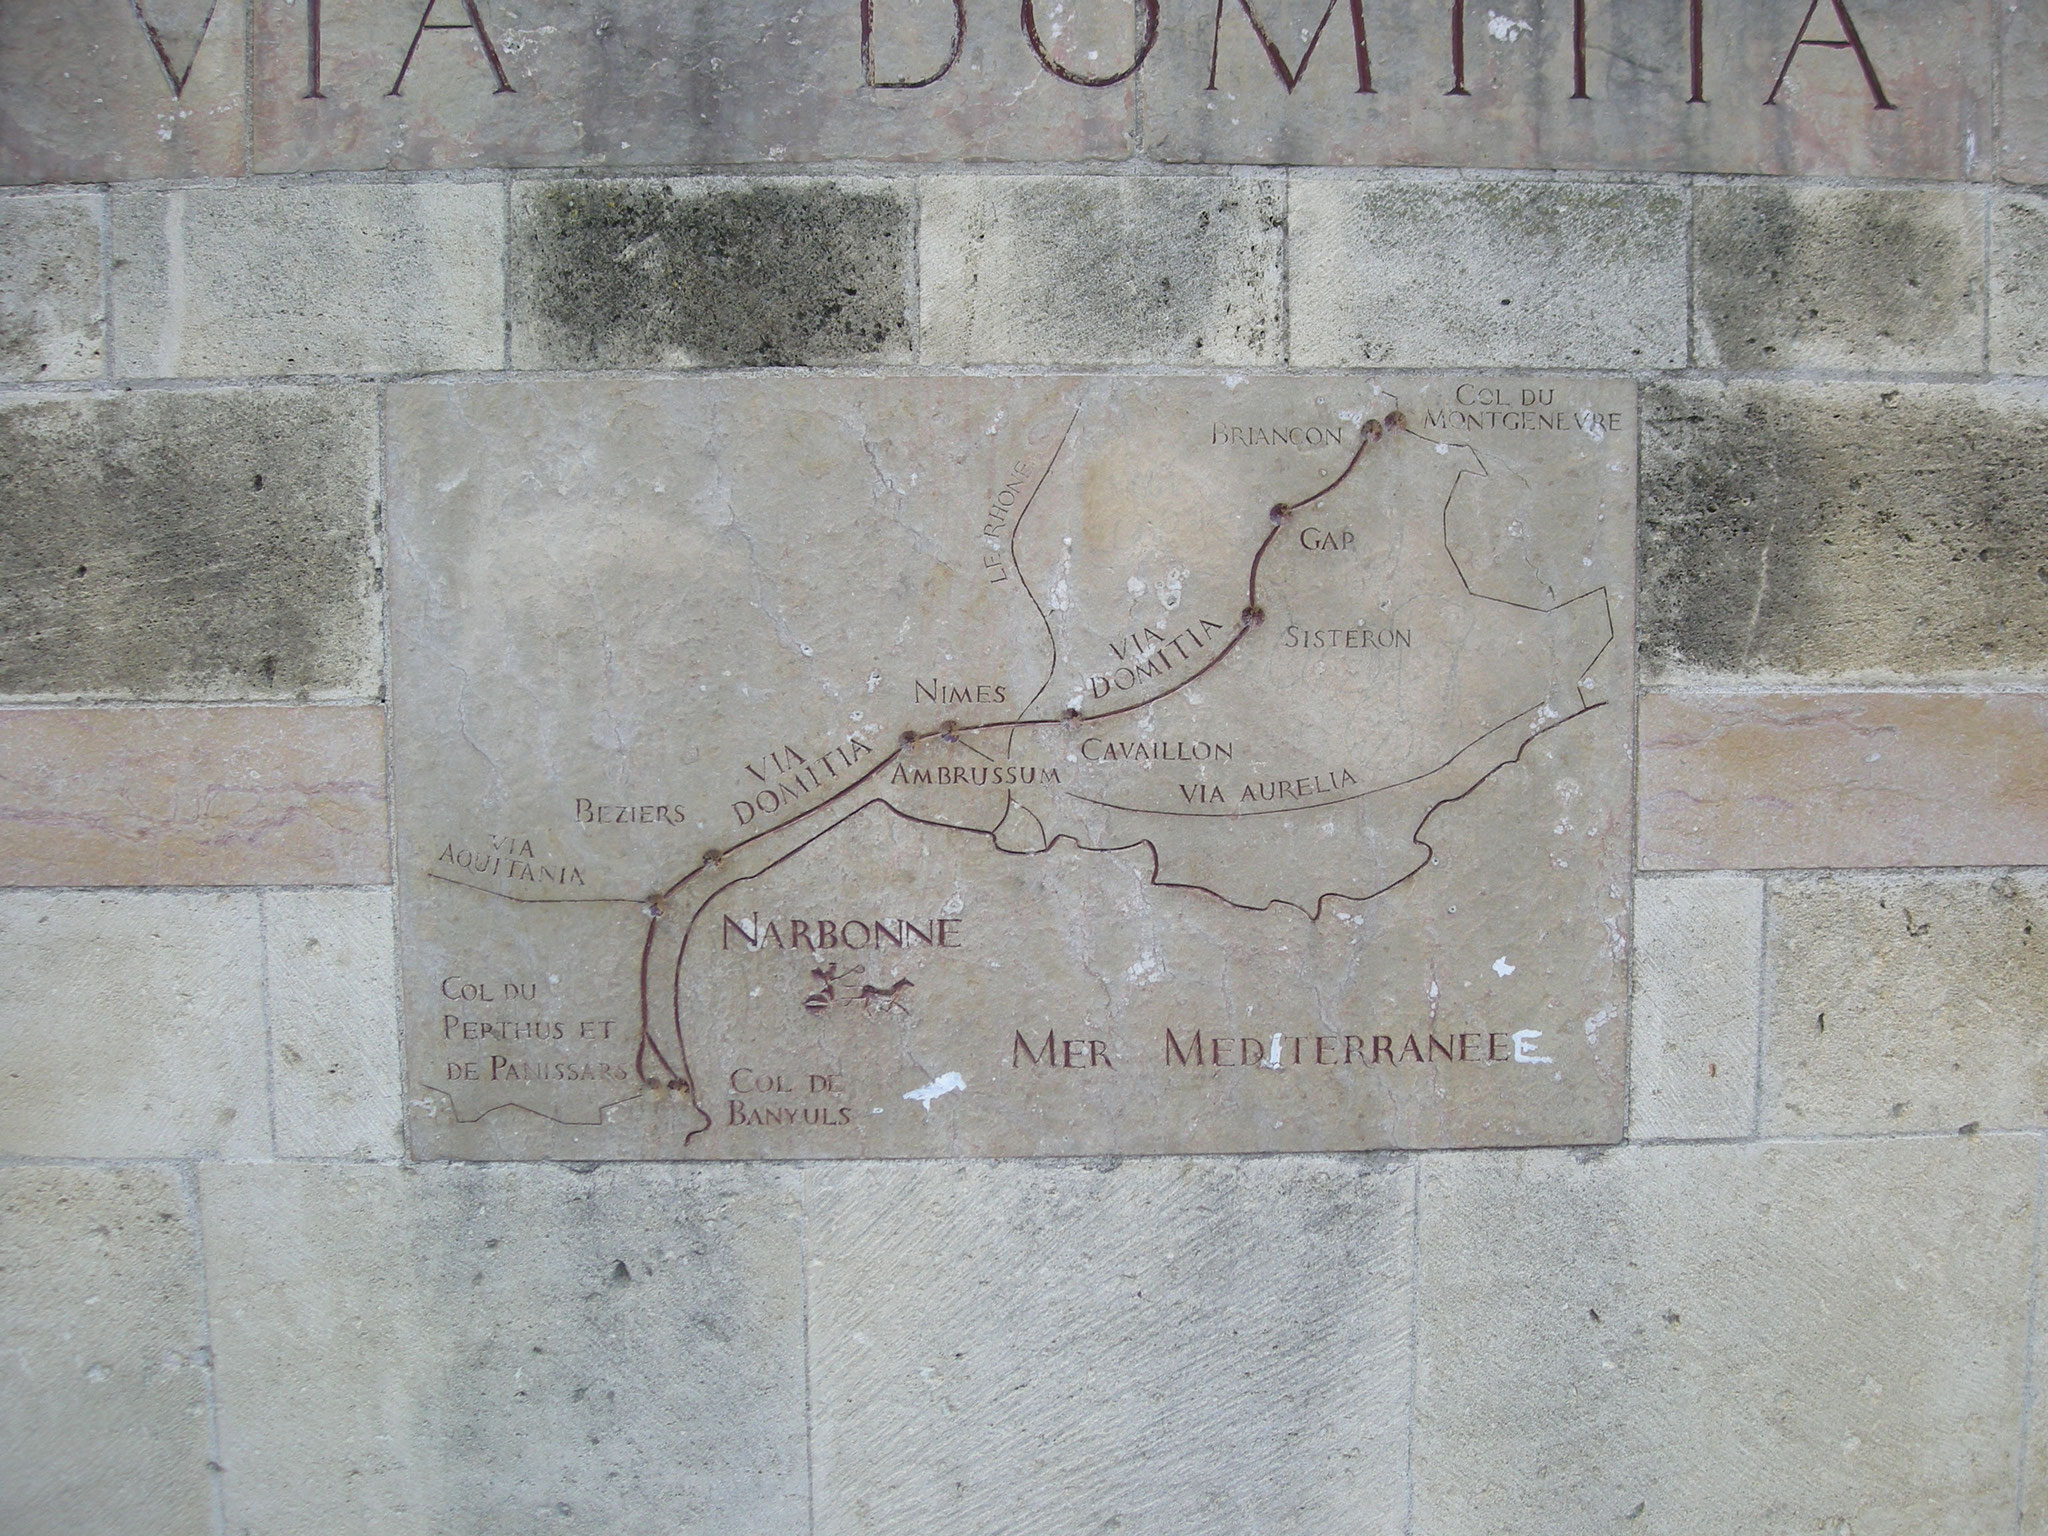 Carte de la Via Domitia